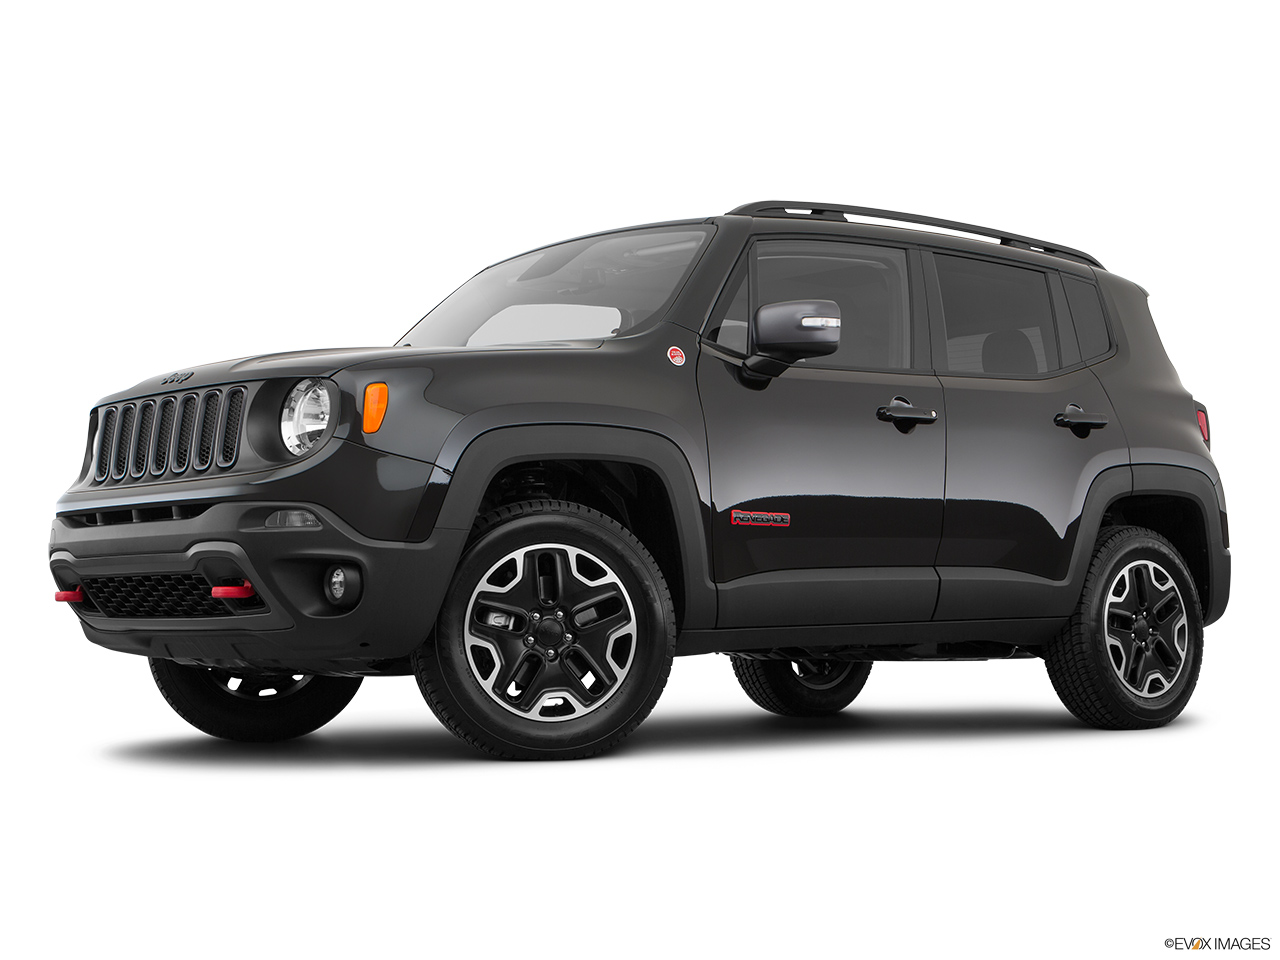 car features list for jeep renegade 2017 trailhawk bahrain yallamotor. Black Bedroom Furniture Sets. Home Design Ideas